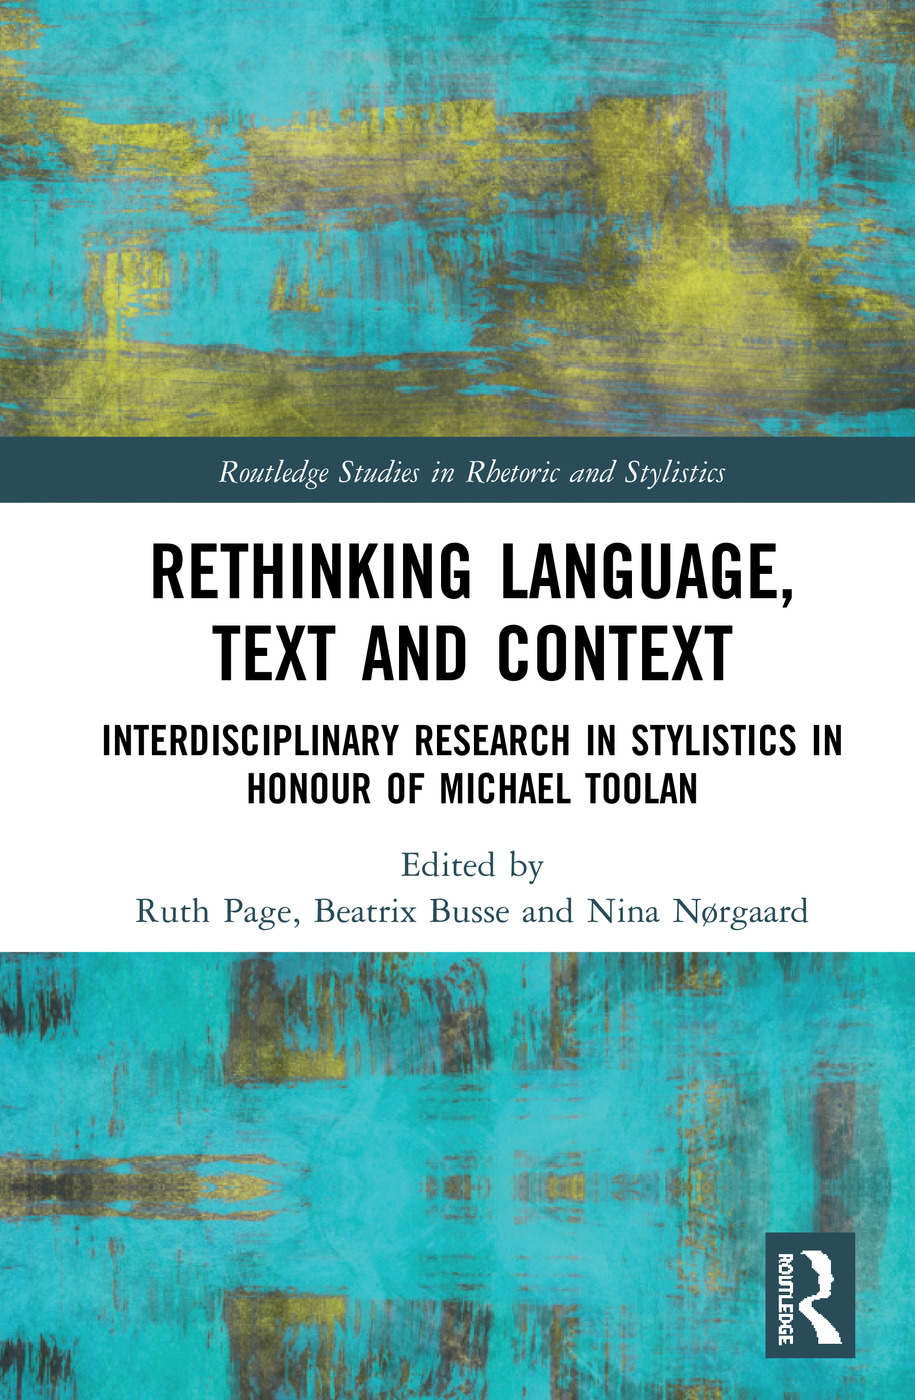 Rethinking Language, Text and Context: Interdisciplinary Research in Stylistics in Honour of Michael Toolan book cover